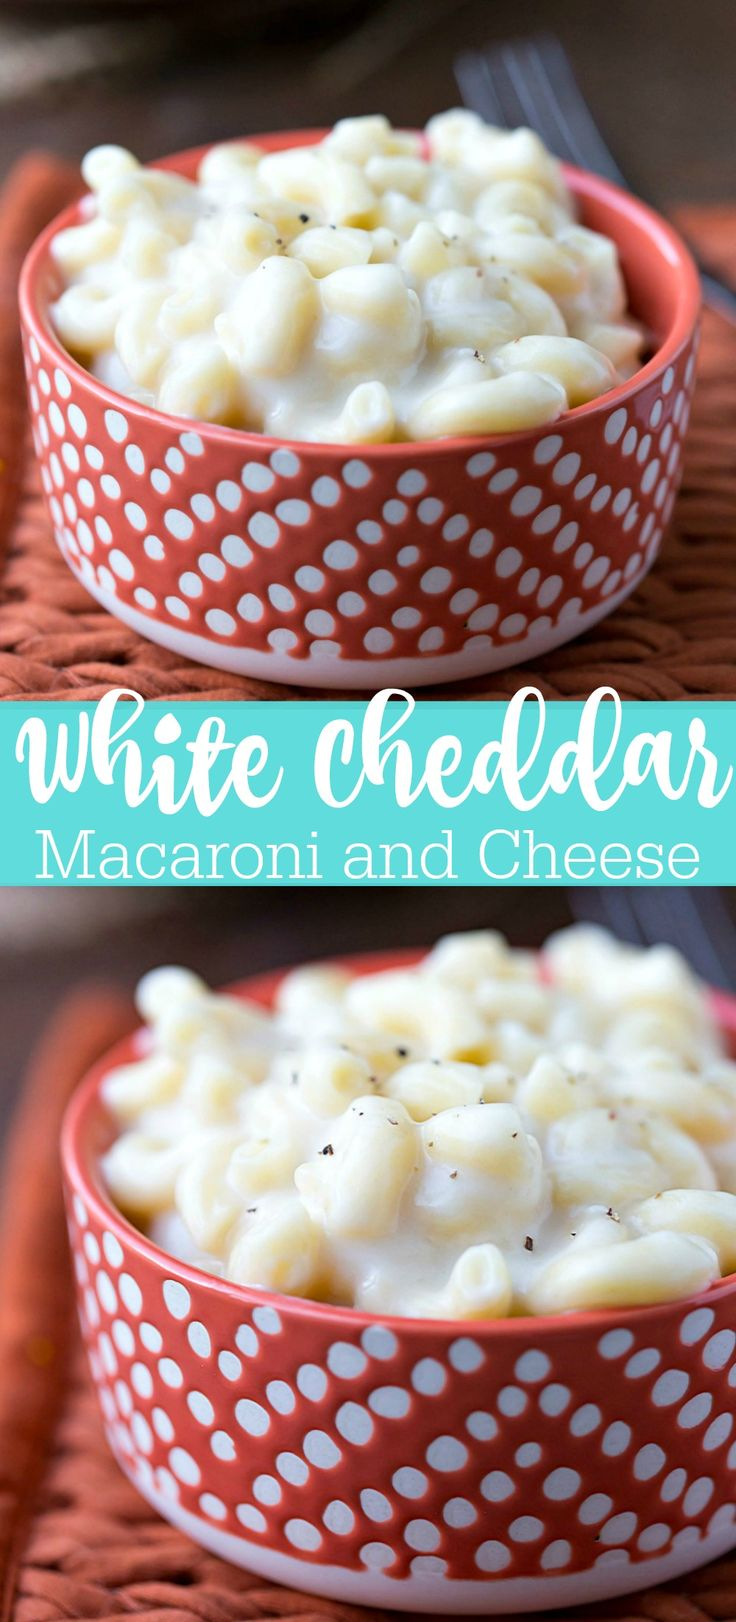 White Cheddar Macaroni and Cheese Recipe - classic creamy, cheesy dinner!